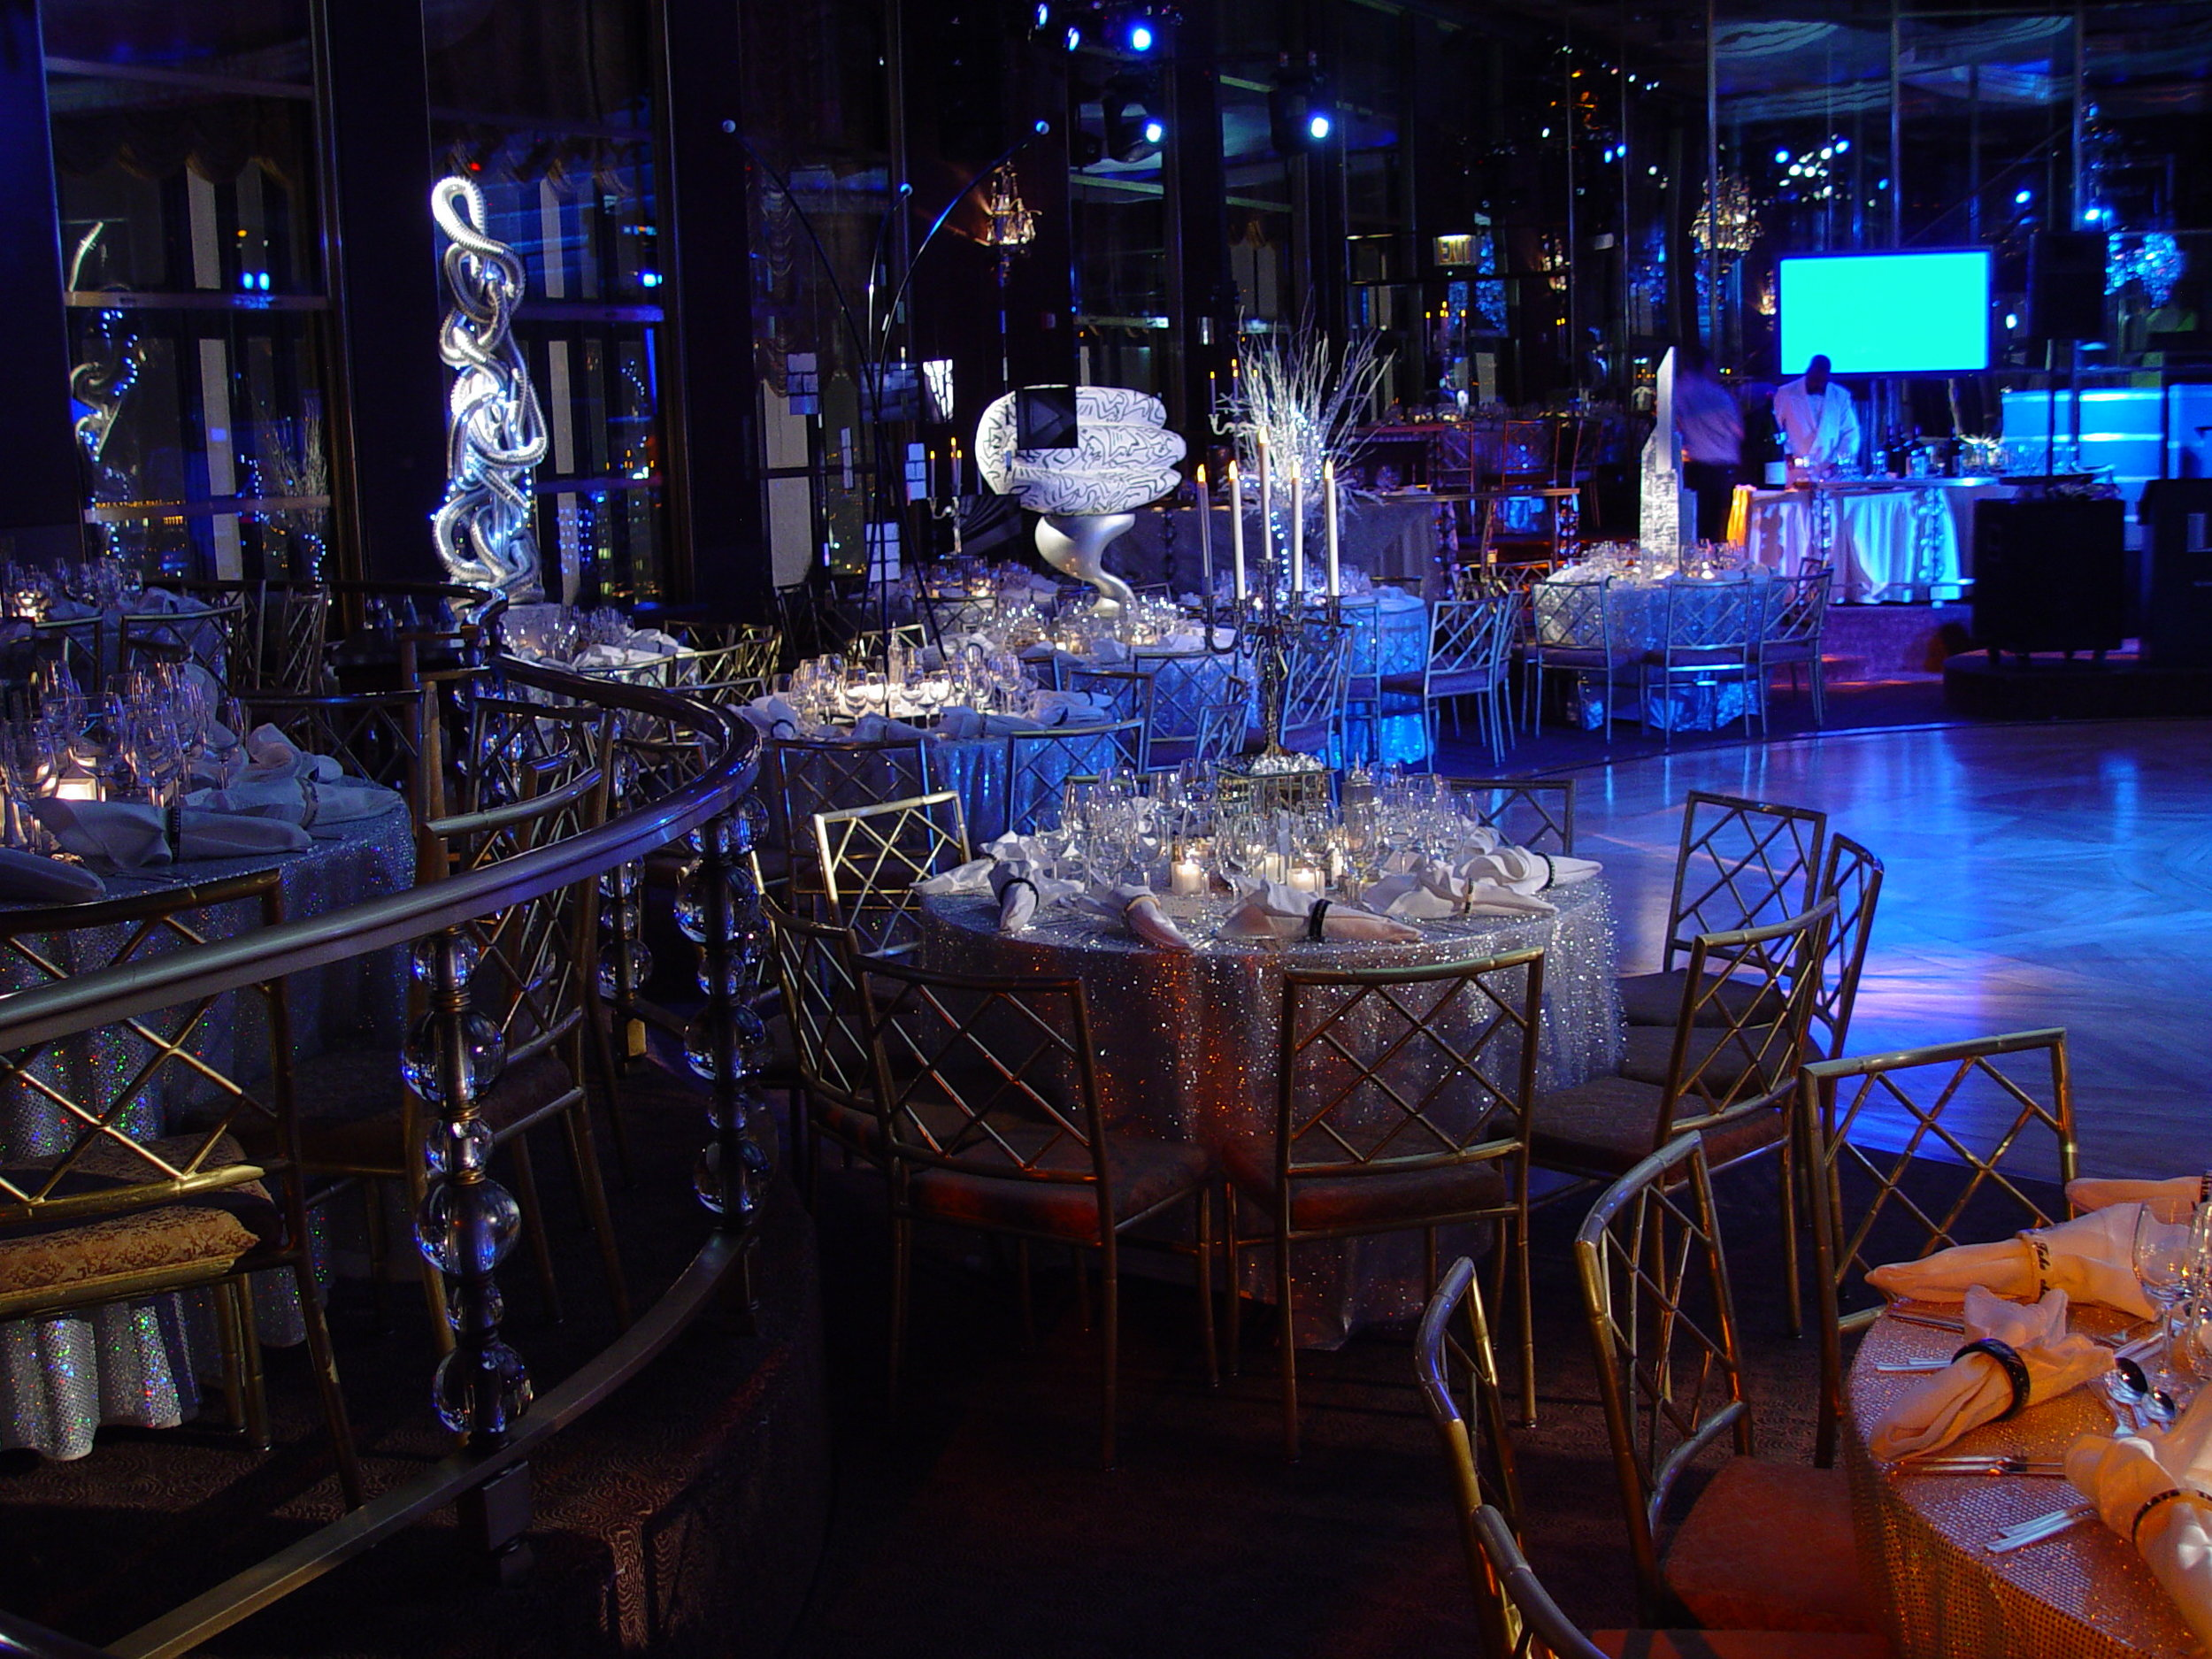 Mitzvah+decor+design+centerpieces+lighting+Bar+Bat+mitzvahs+eggsotic+events.jpg